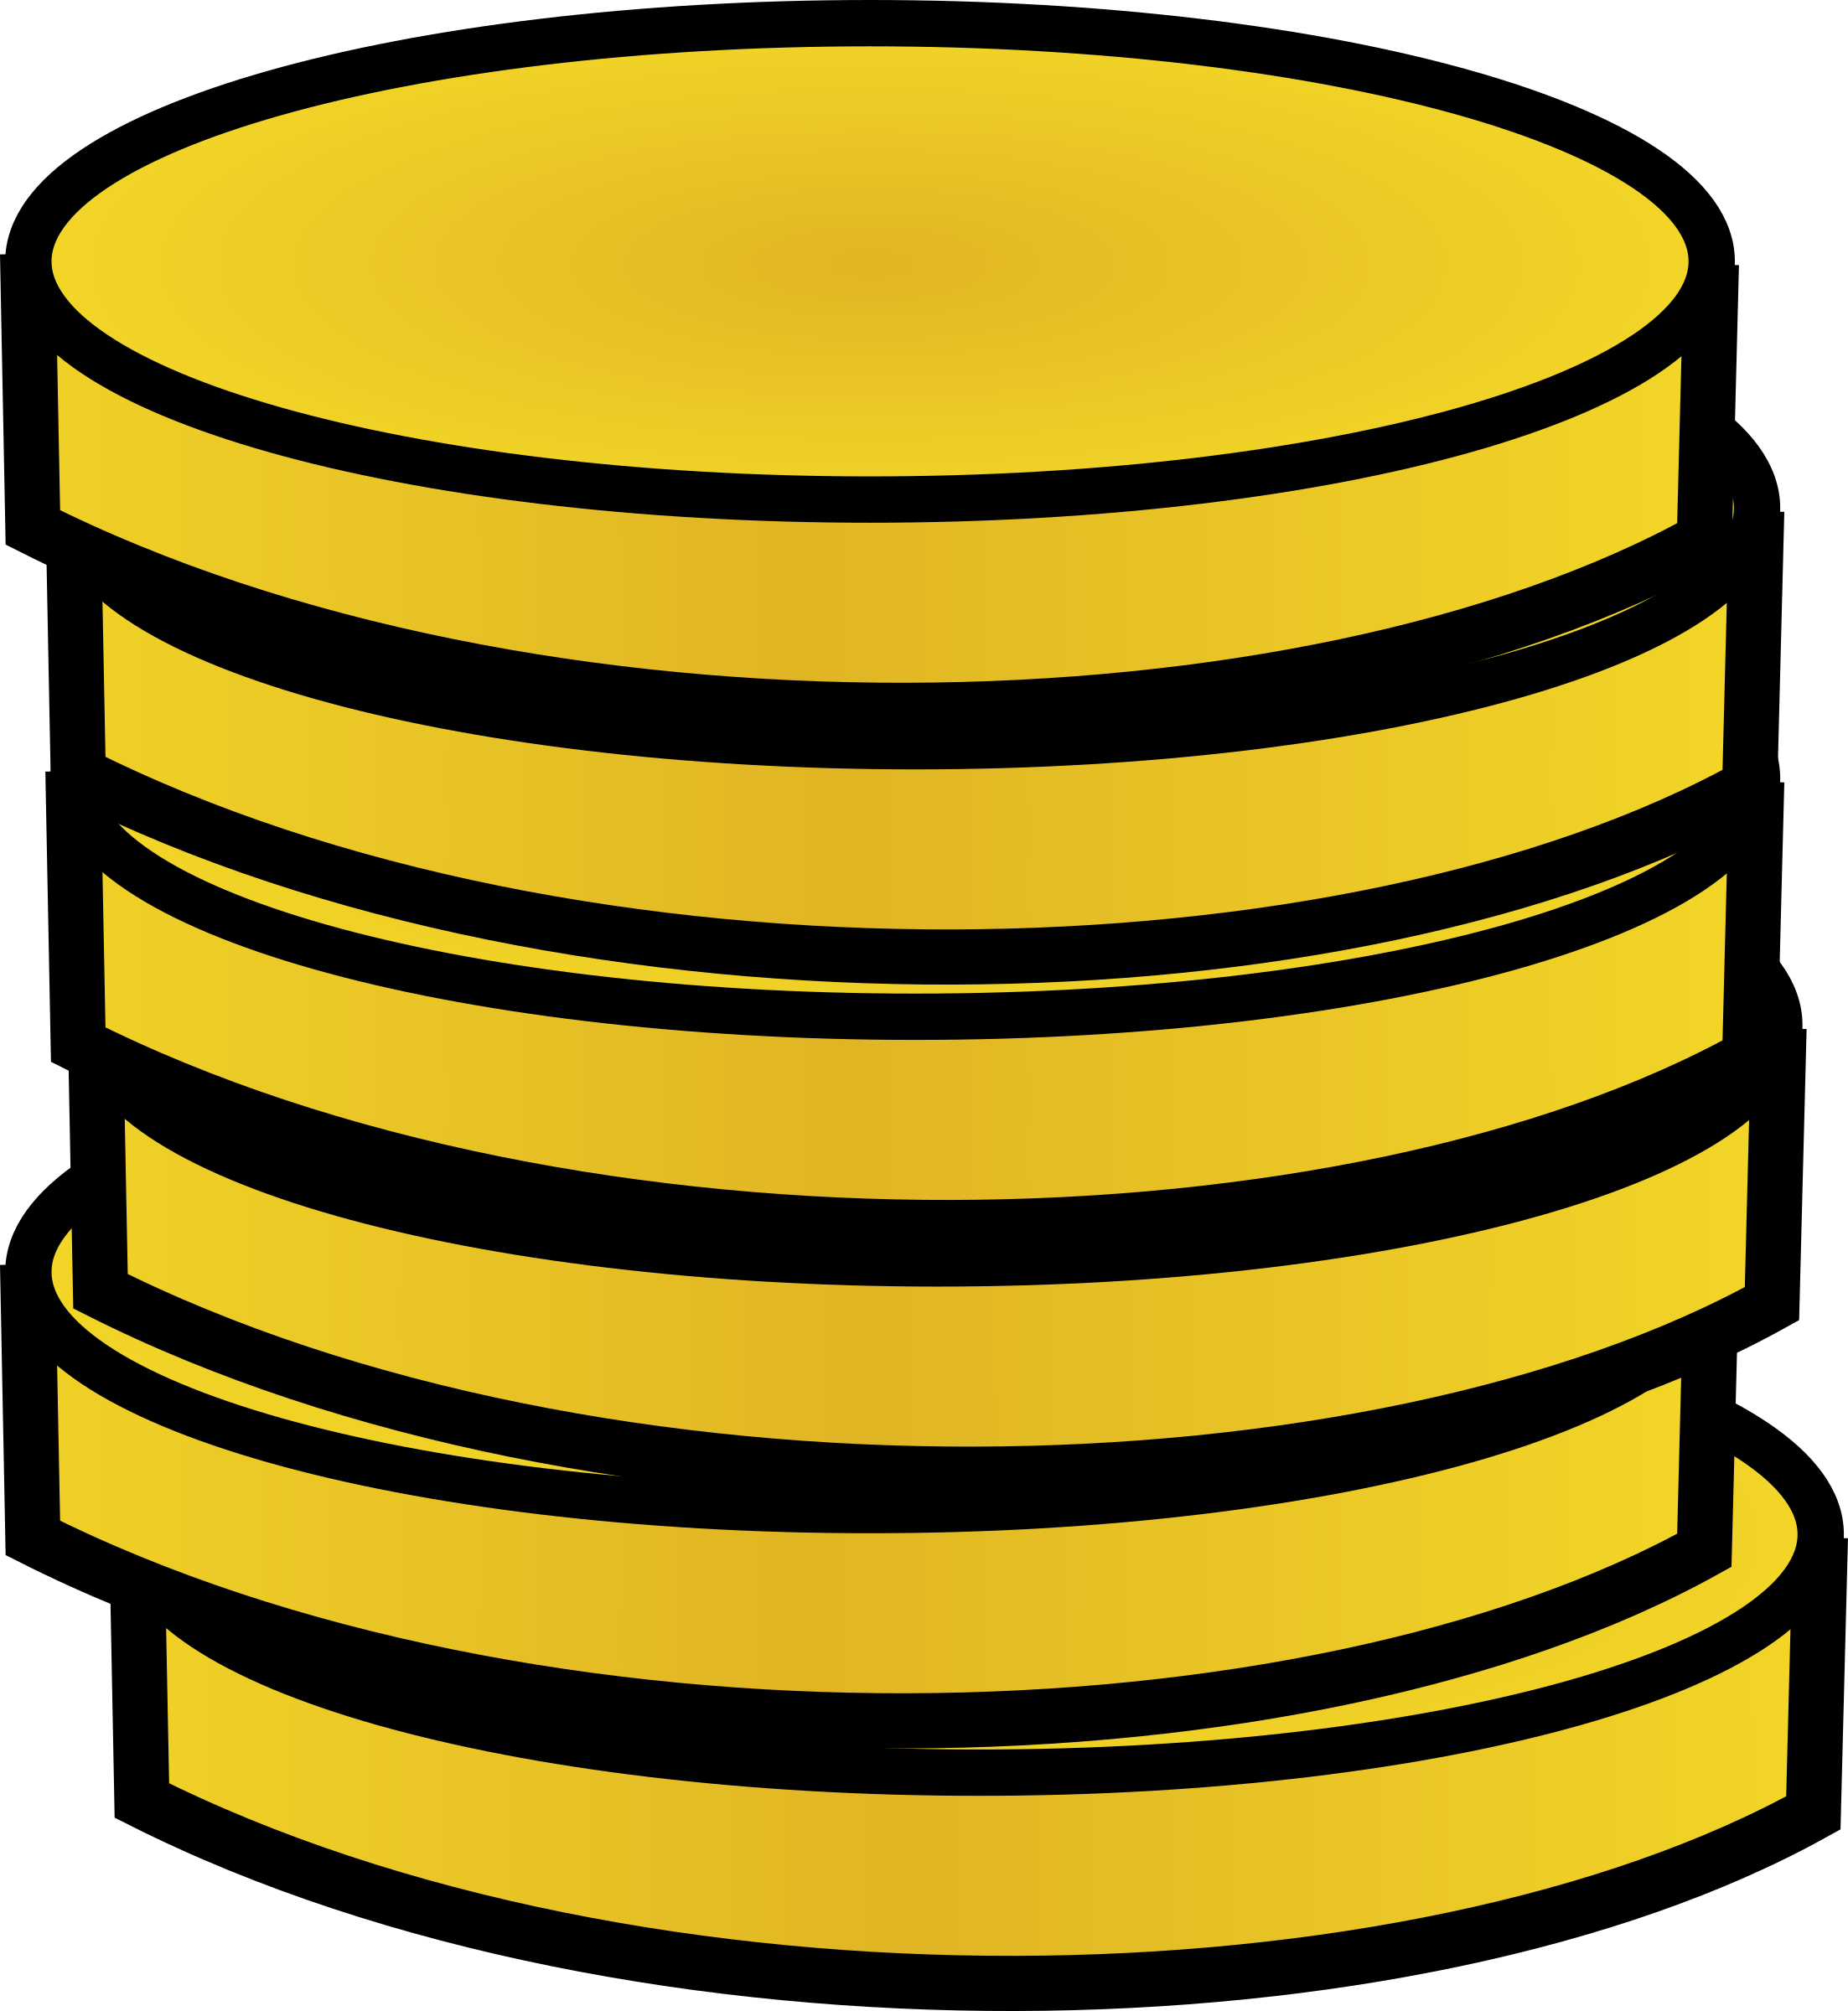 Stack of gold coins by jonadab